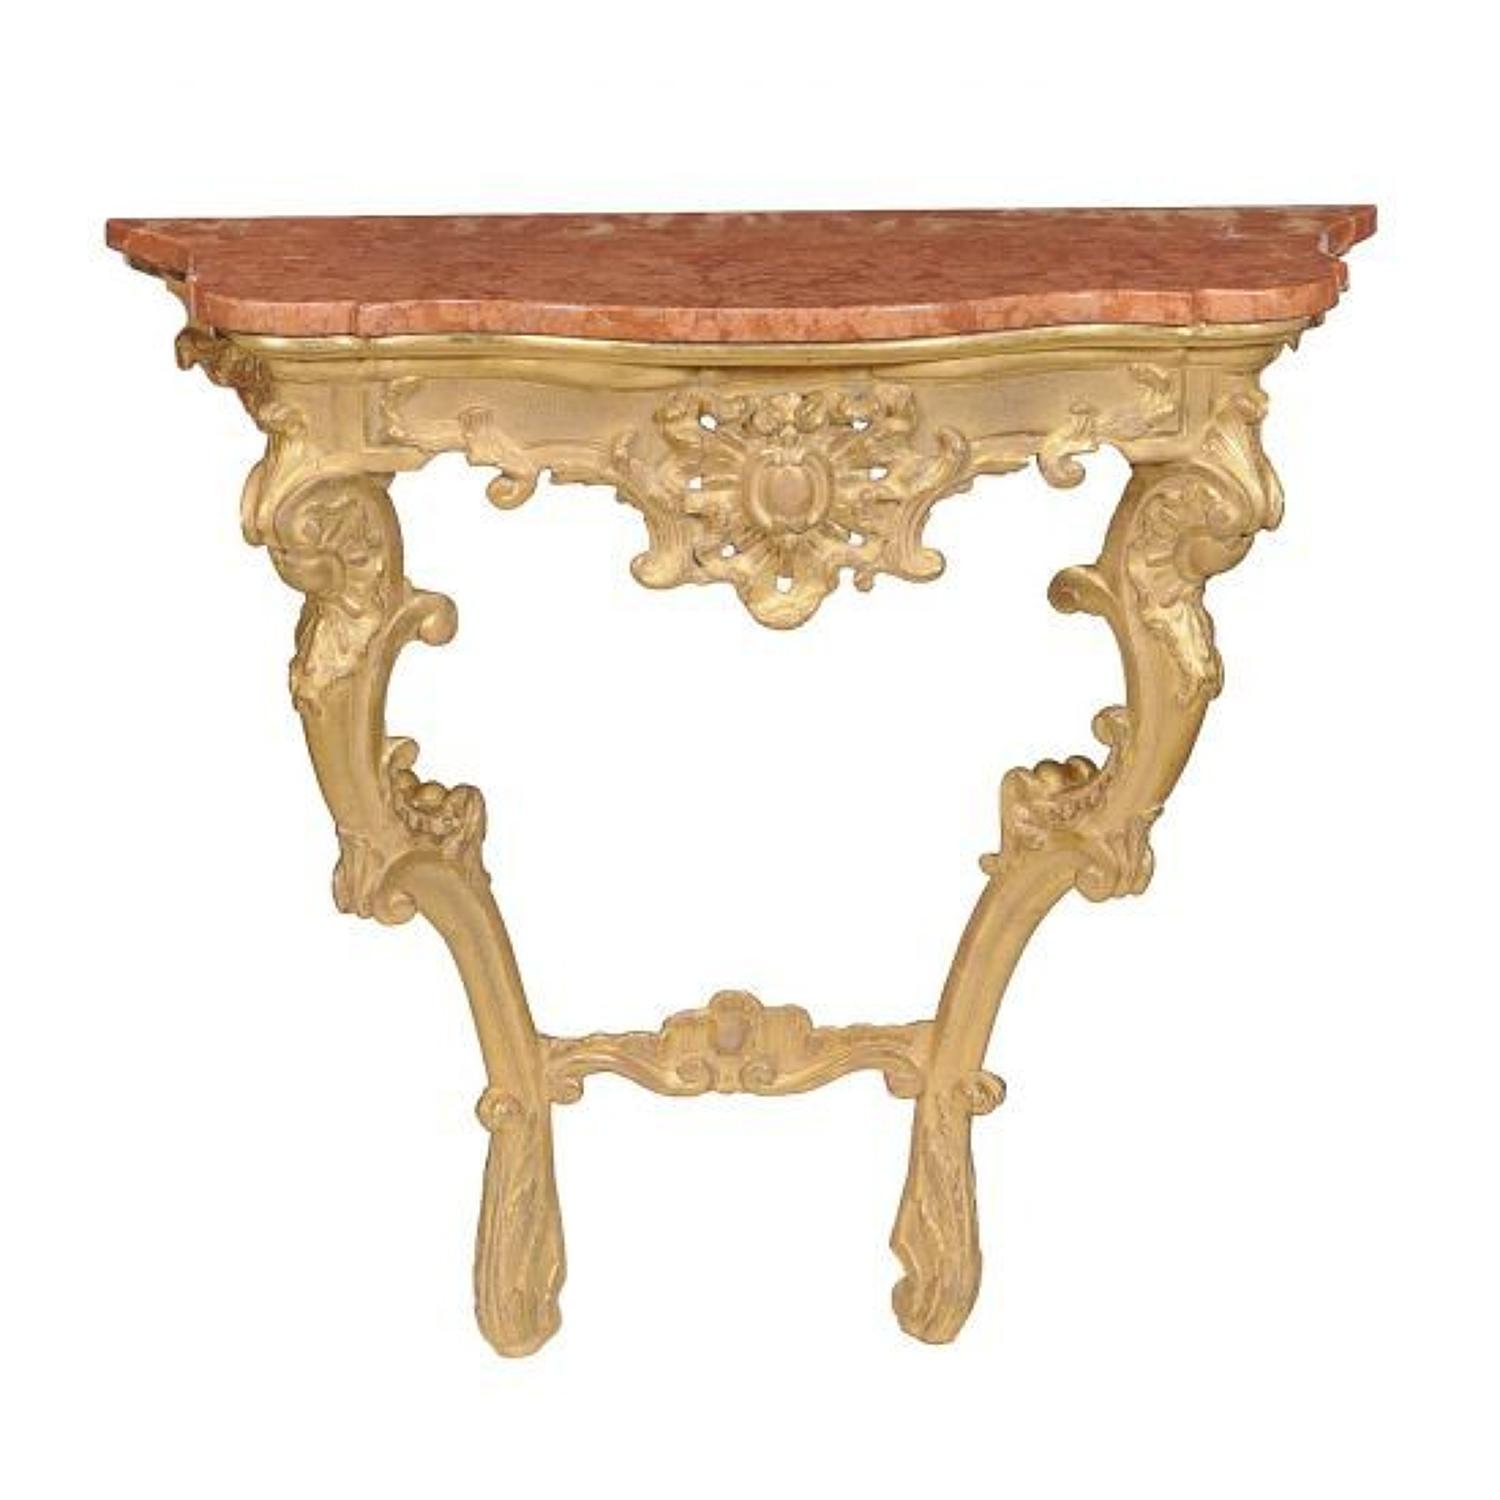 A gilt-wood and marble topped console table